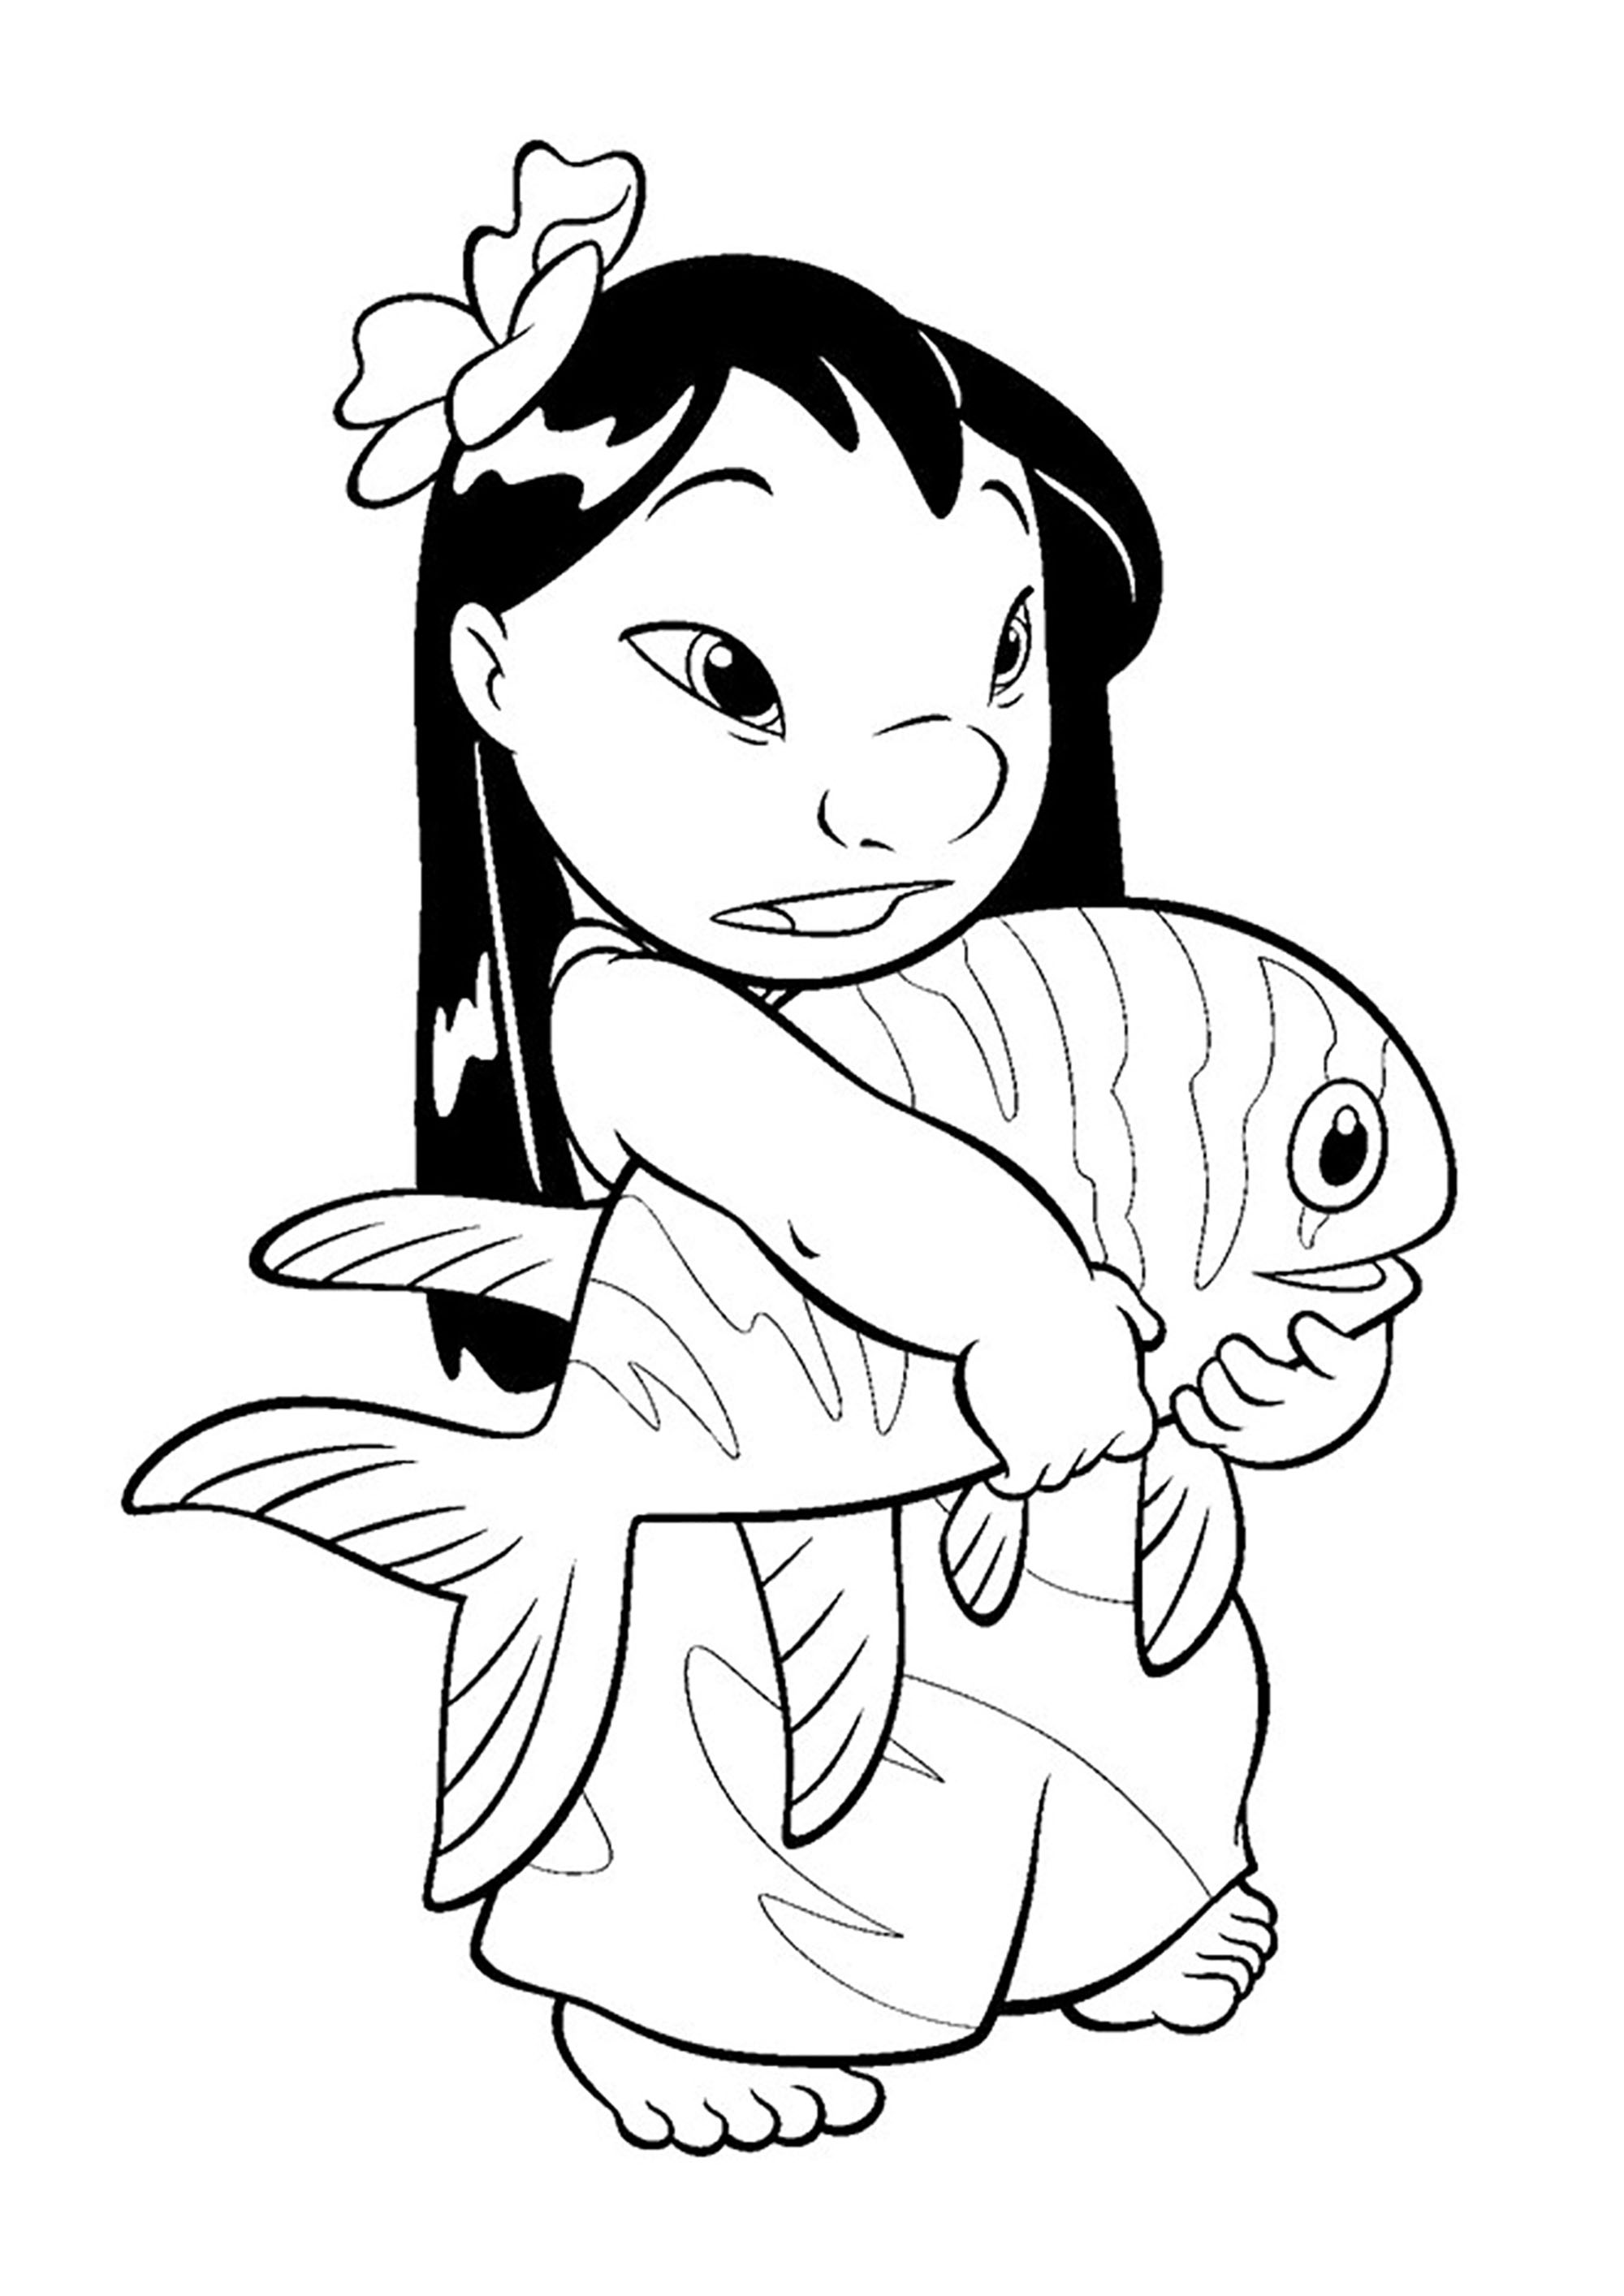 Cute free Lilo And Stich coloring page to download